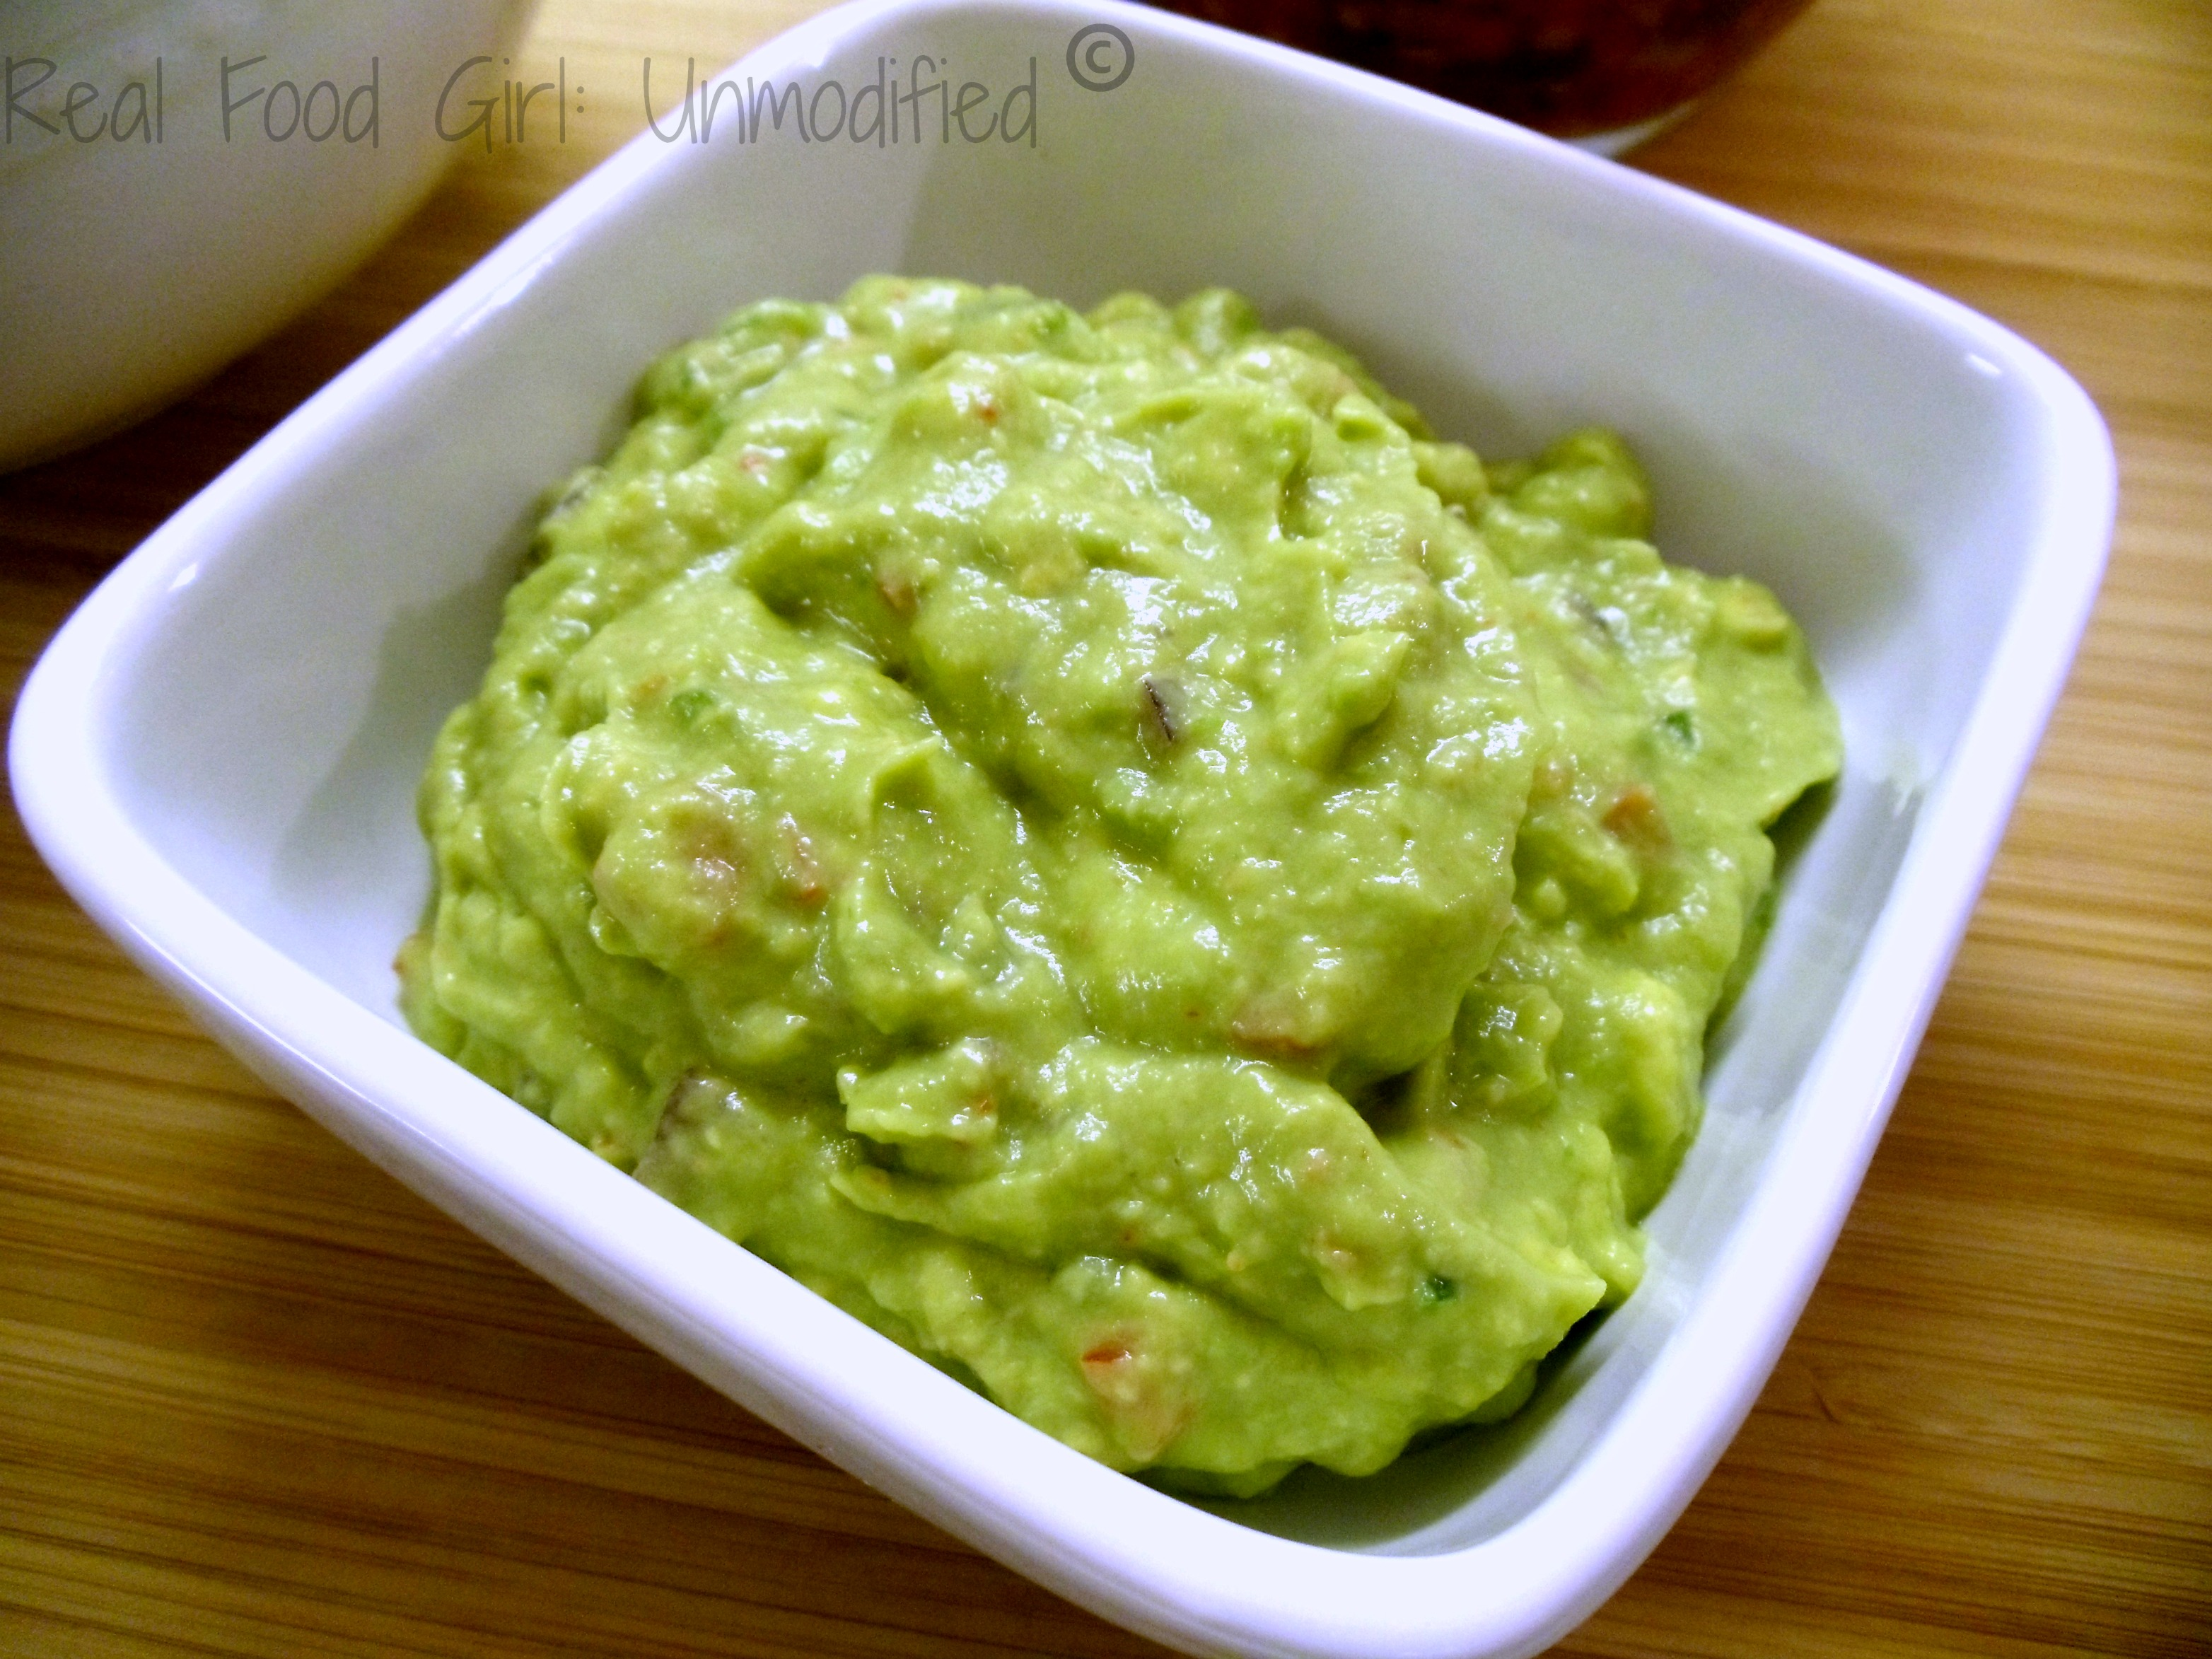 Holy Guacamole. Organic, Fresh, and a secret ingredient makes it extra creamy! Real Food Girl: Unmodified